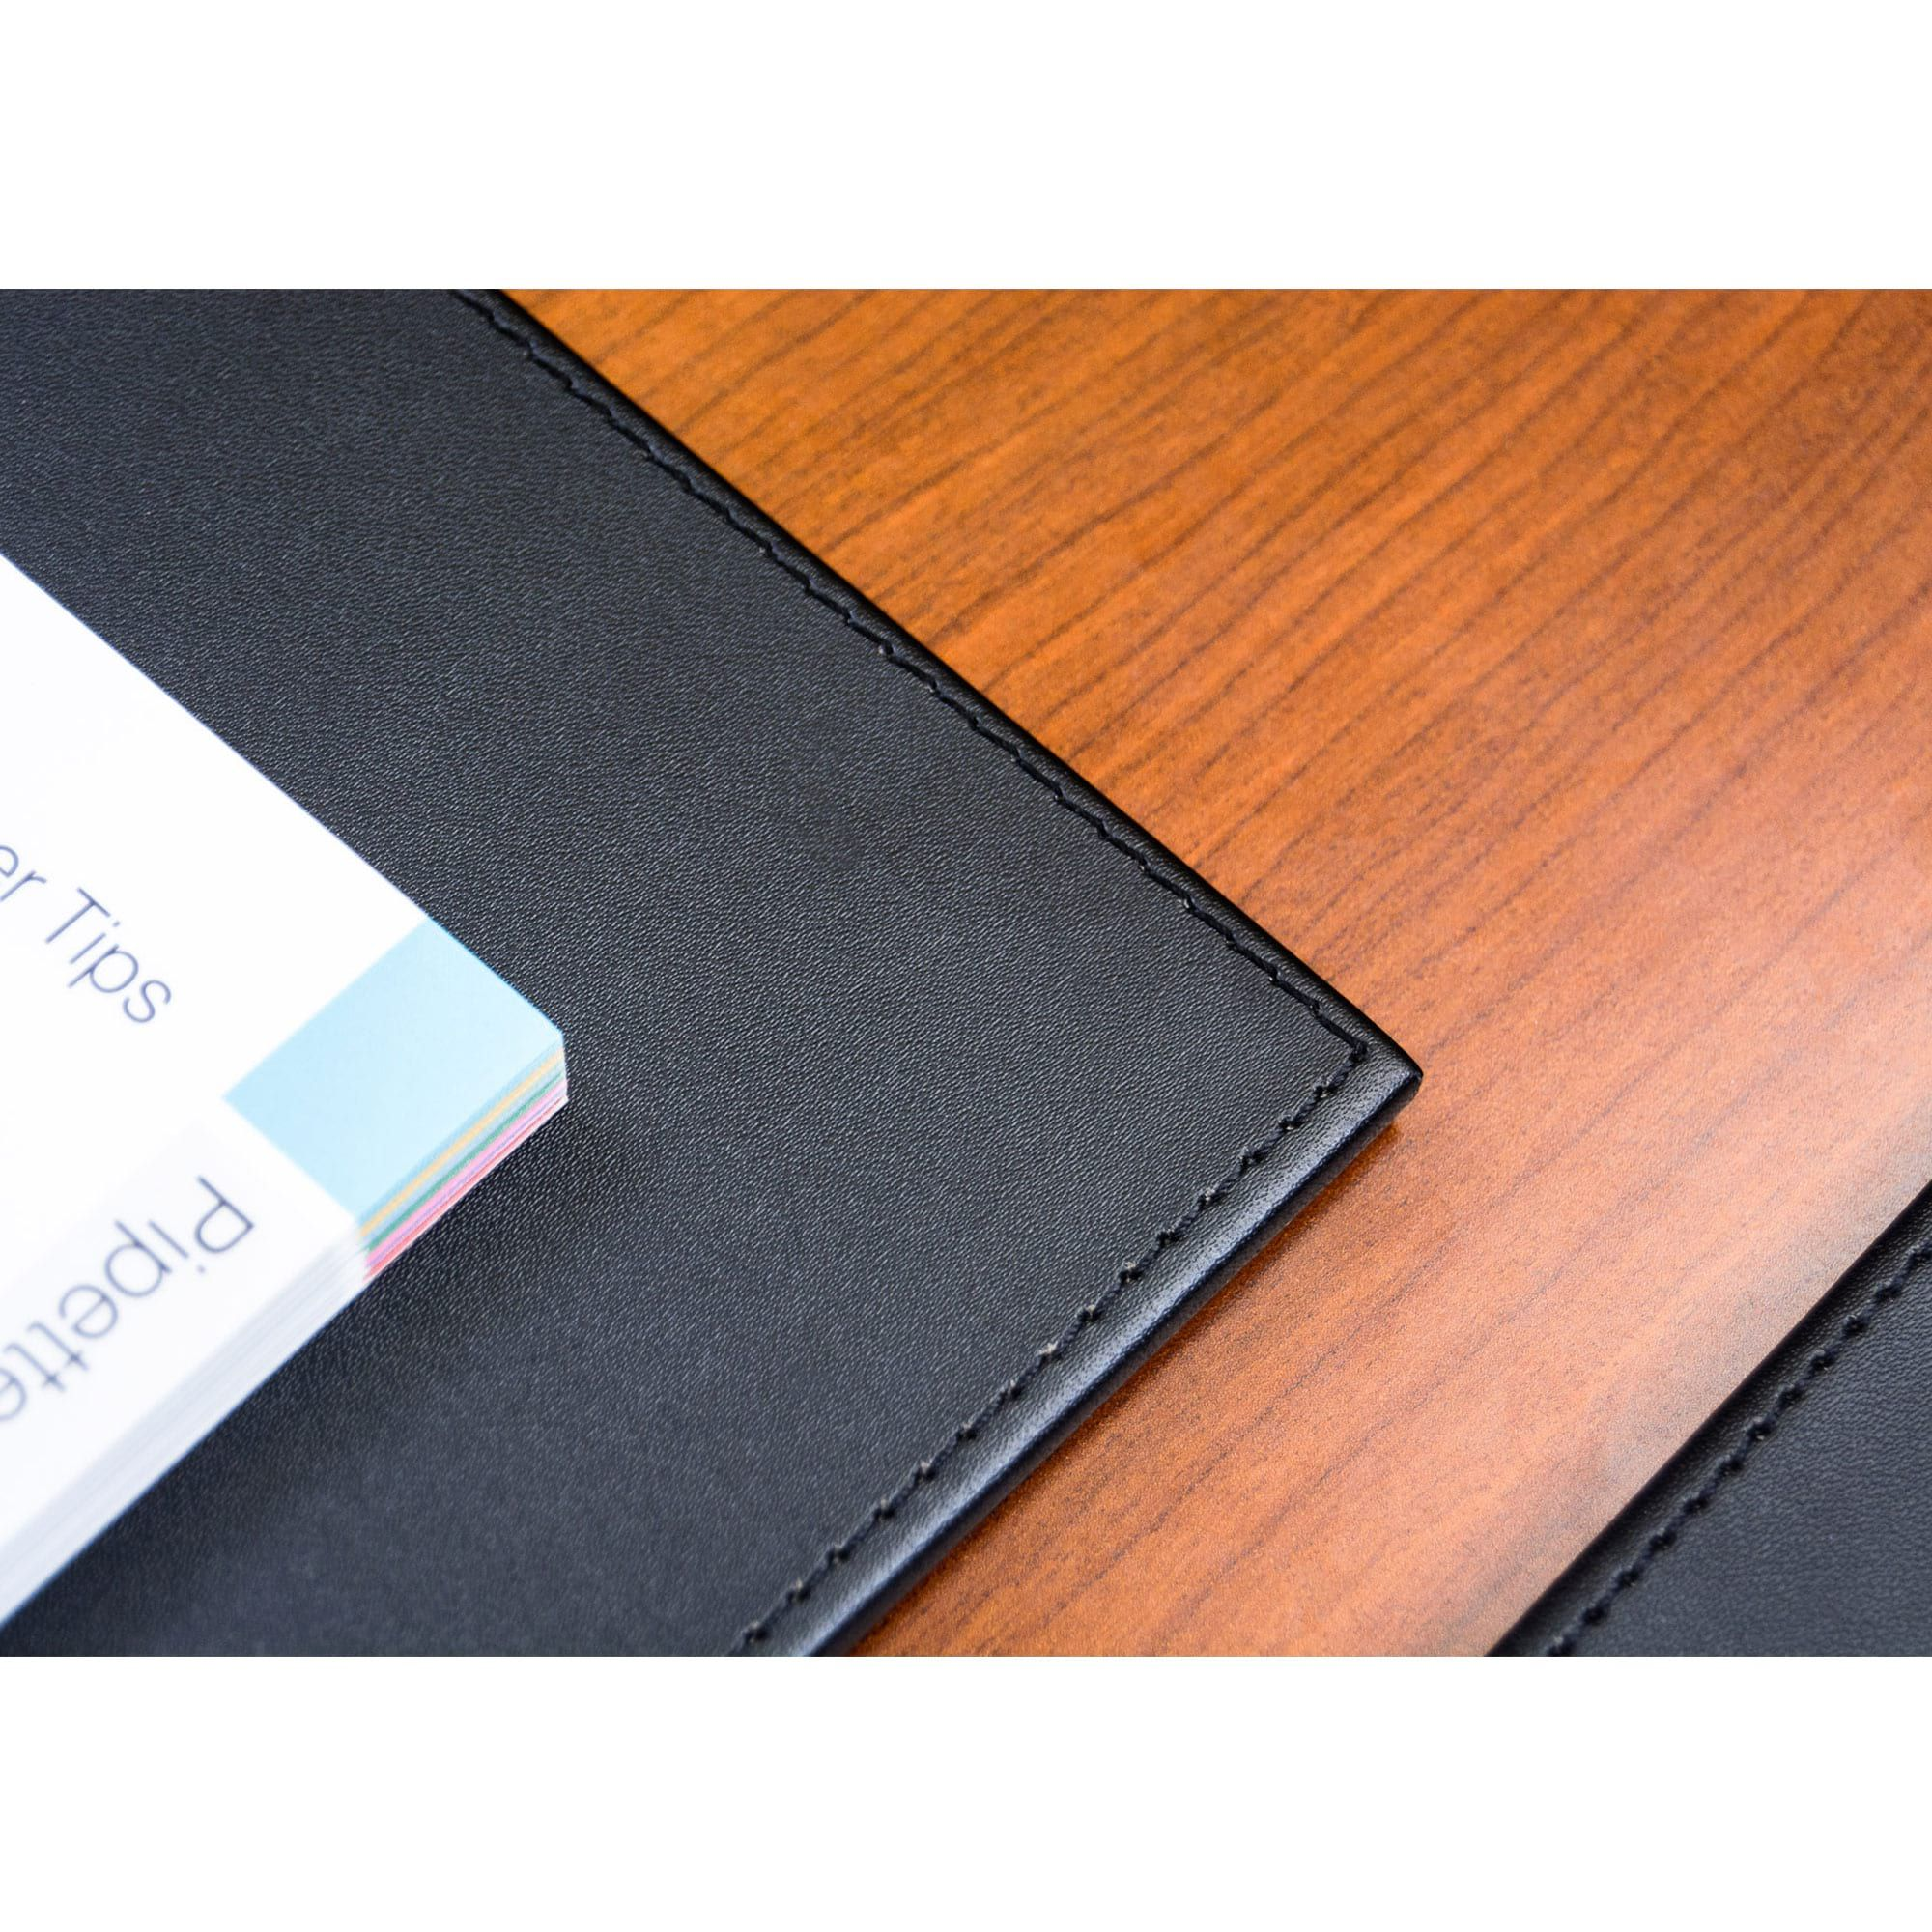 Black Leatherette Conference Table Pad With Stitching - Leather conference table pads